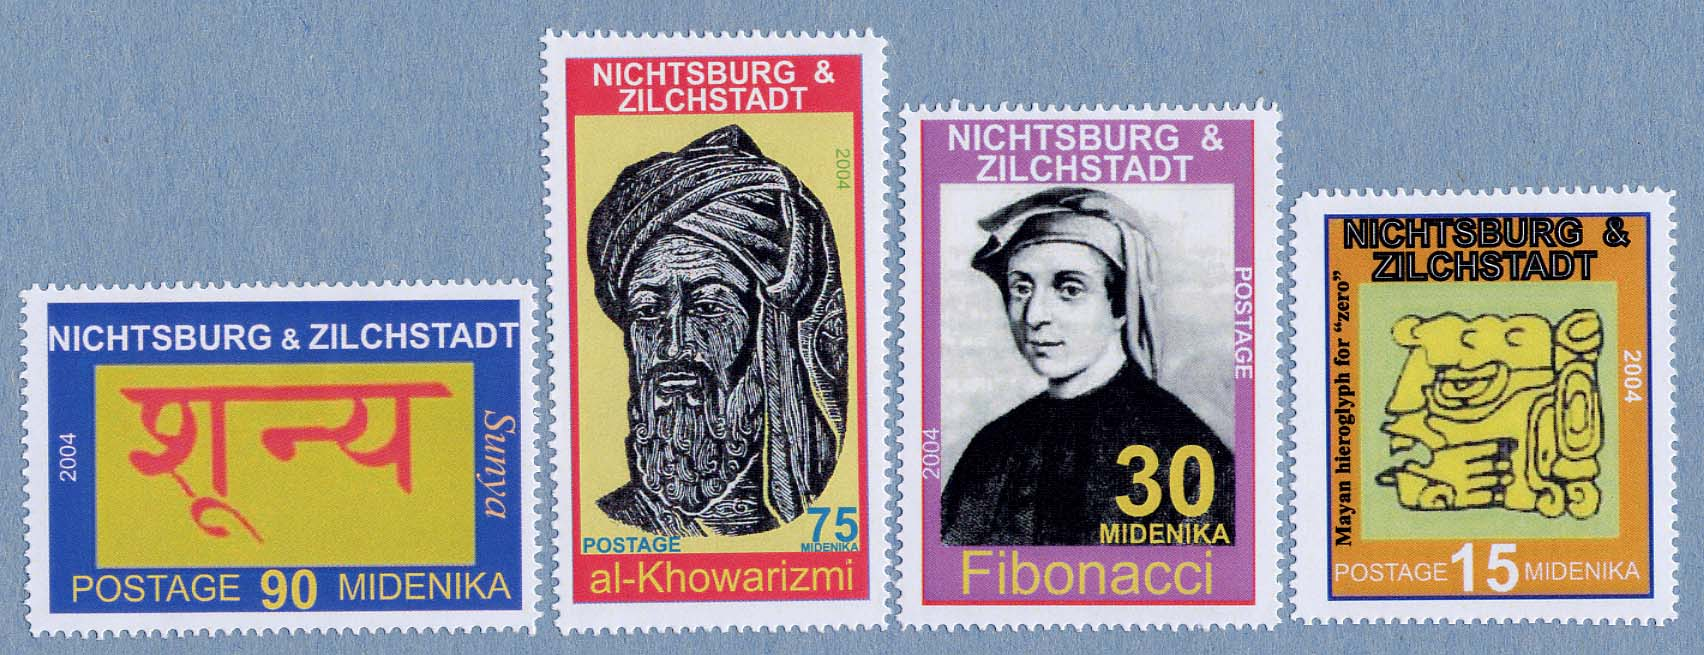 Click here for a larger sized image of the 2004 Nichtsburg and Zilchstadt stamps